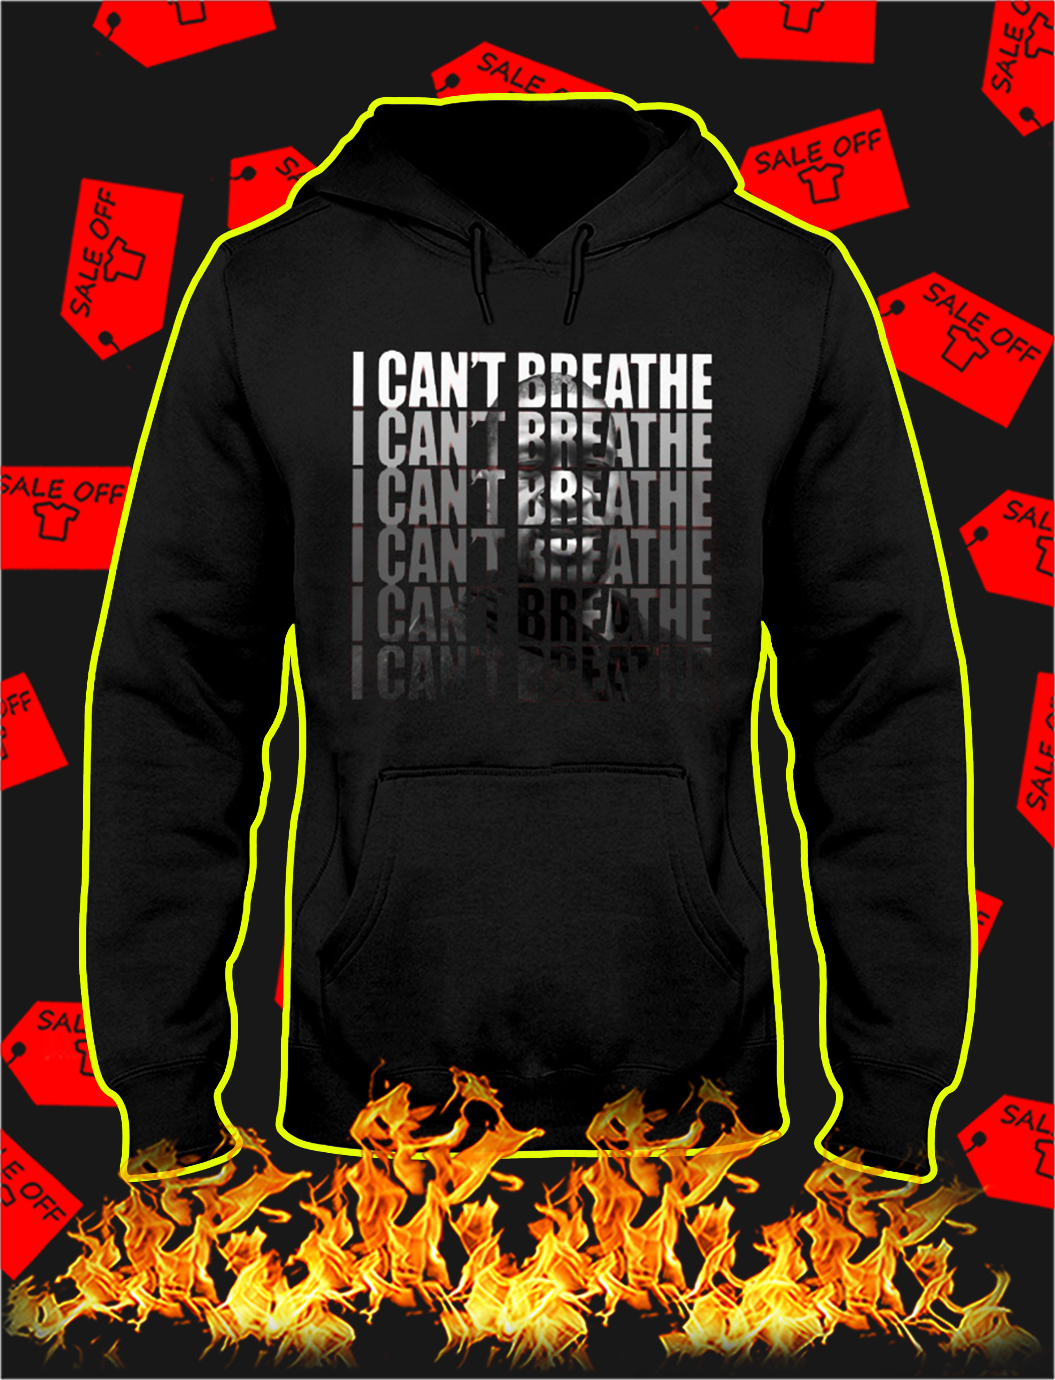 I can't breathe i can't breathe hoodie